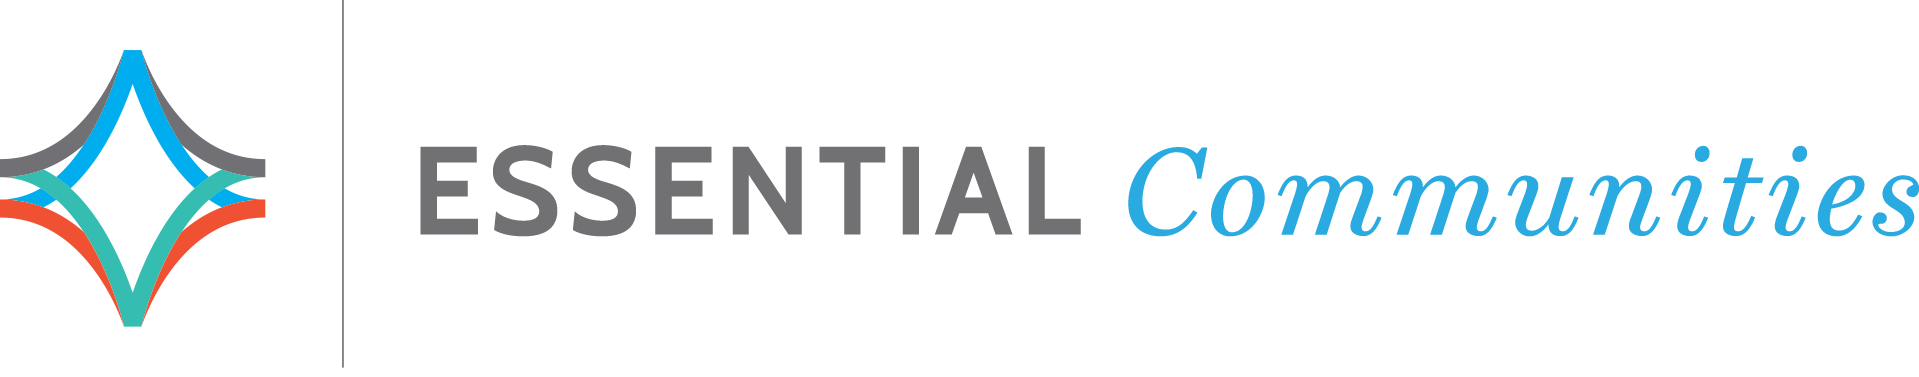 Essential Communities logo